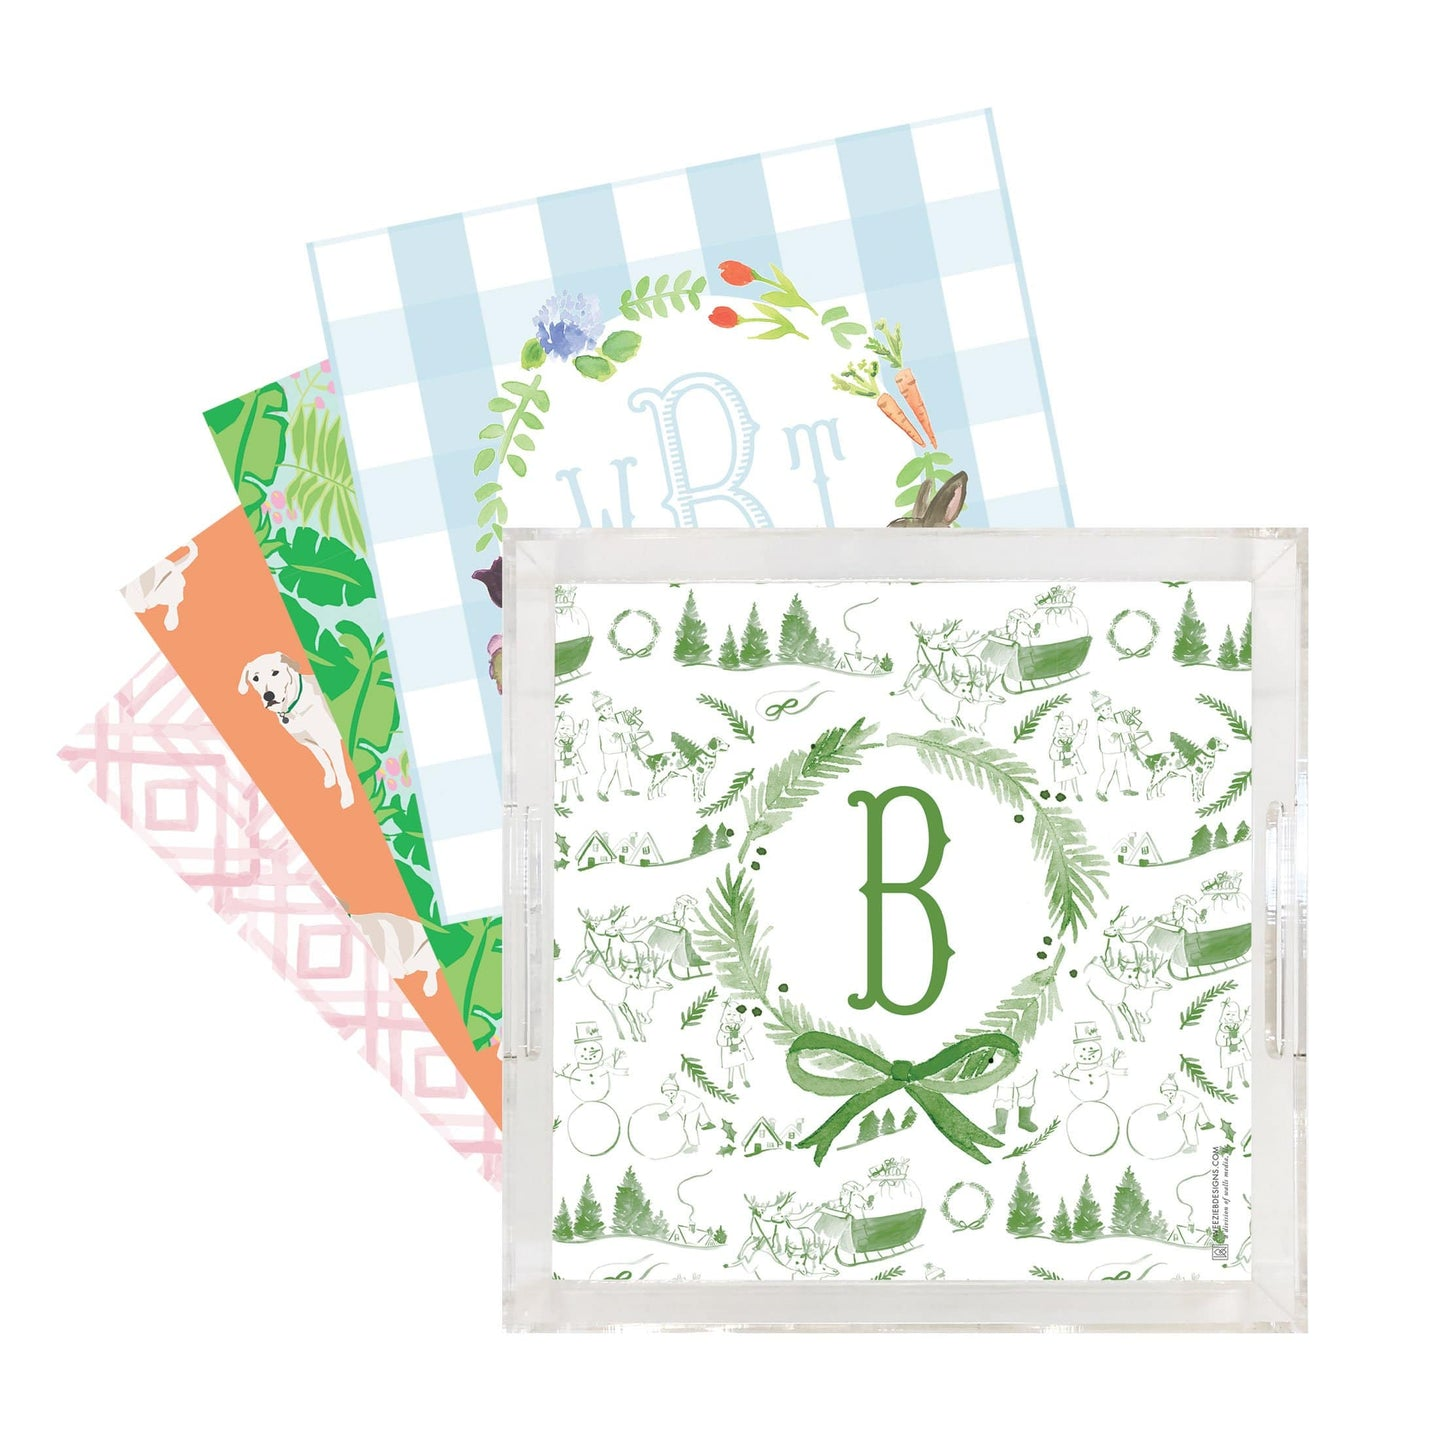 Weezie  B. Designs | All the Season Acrylic Tray with 5 Inserts Set